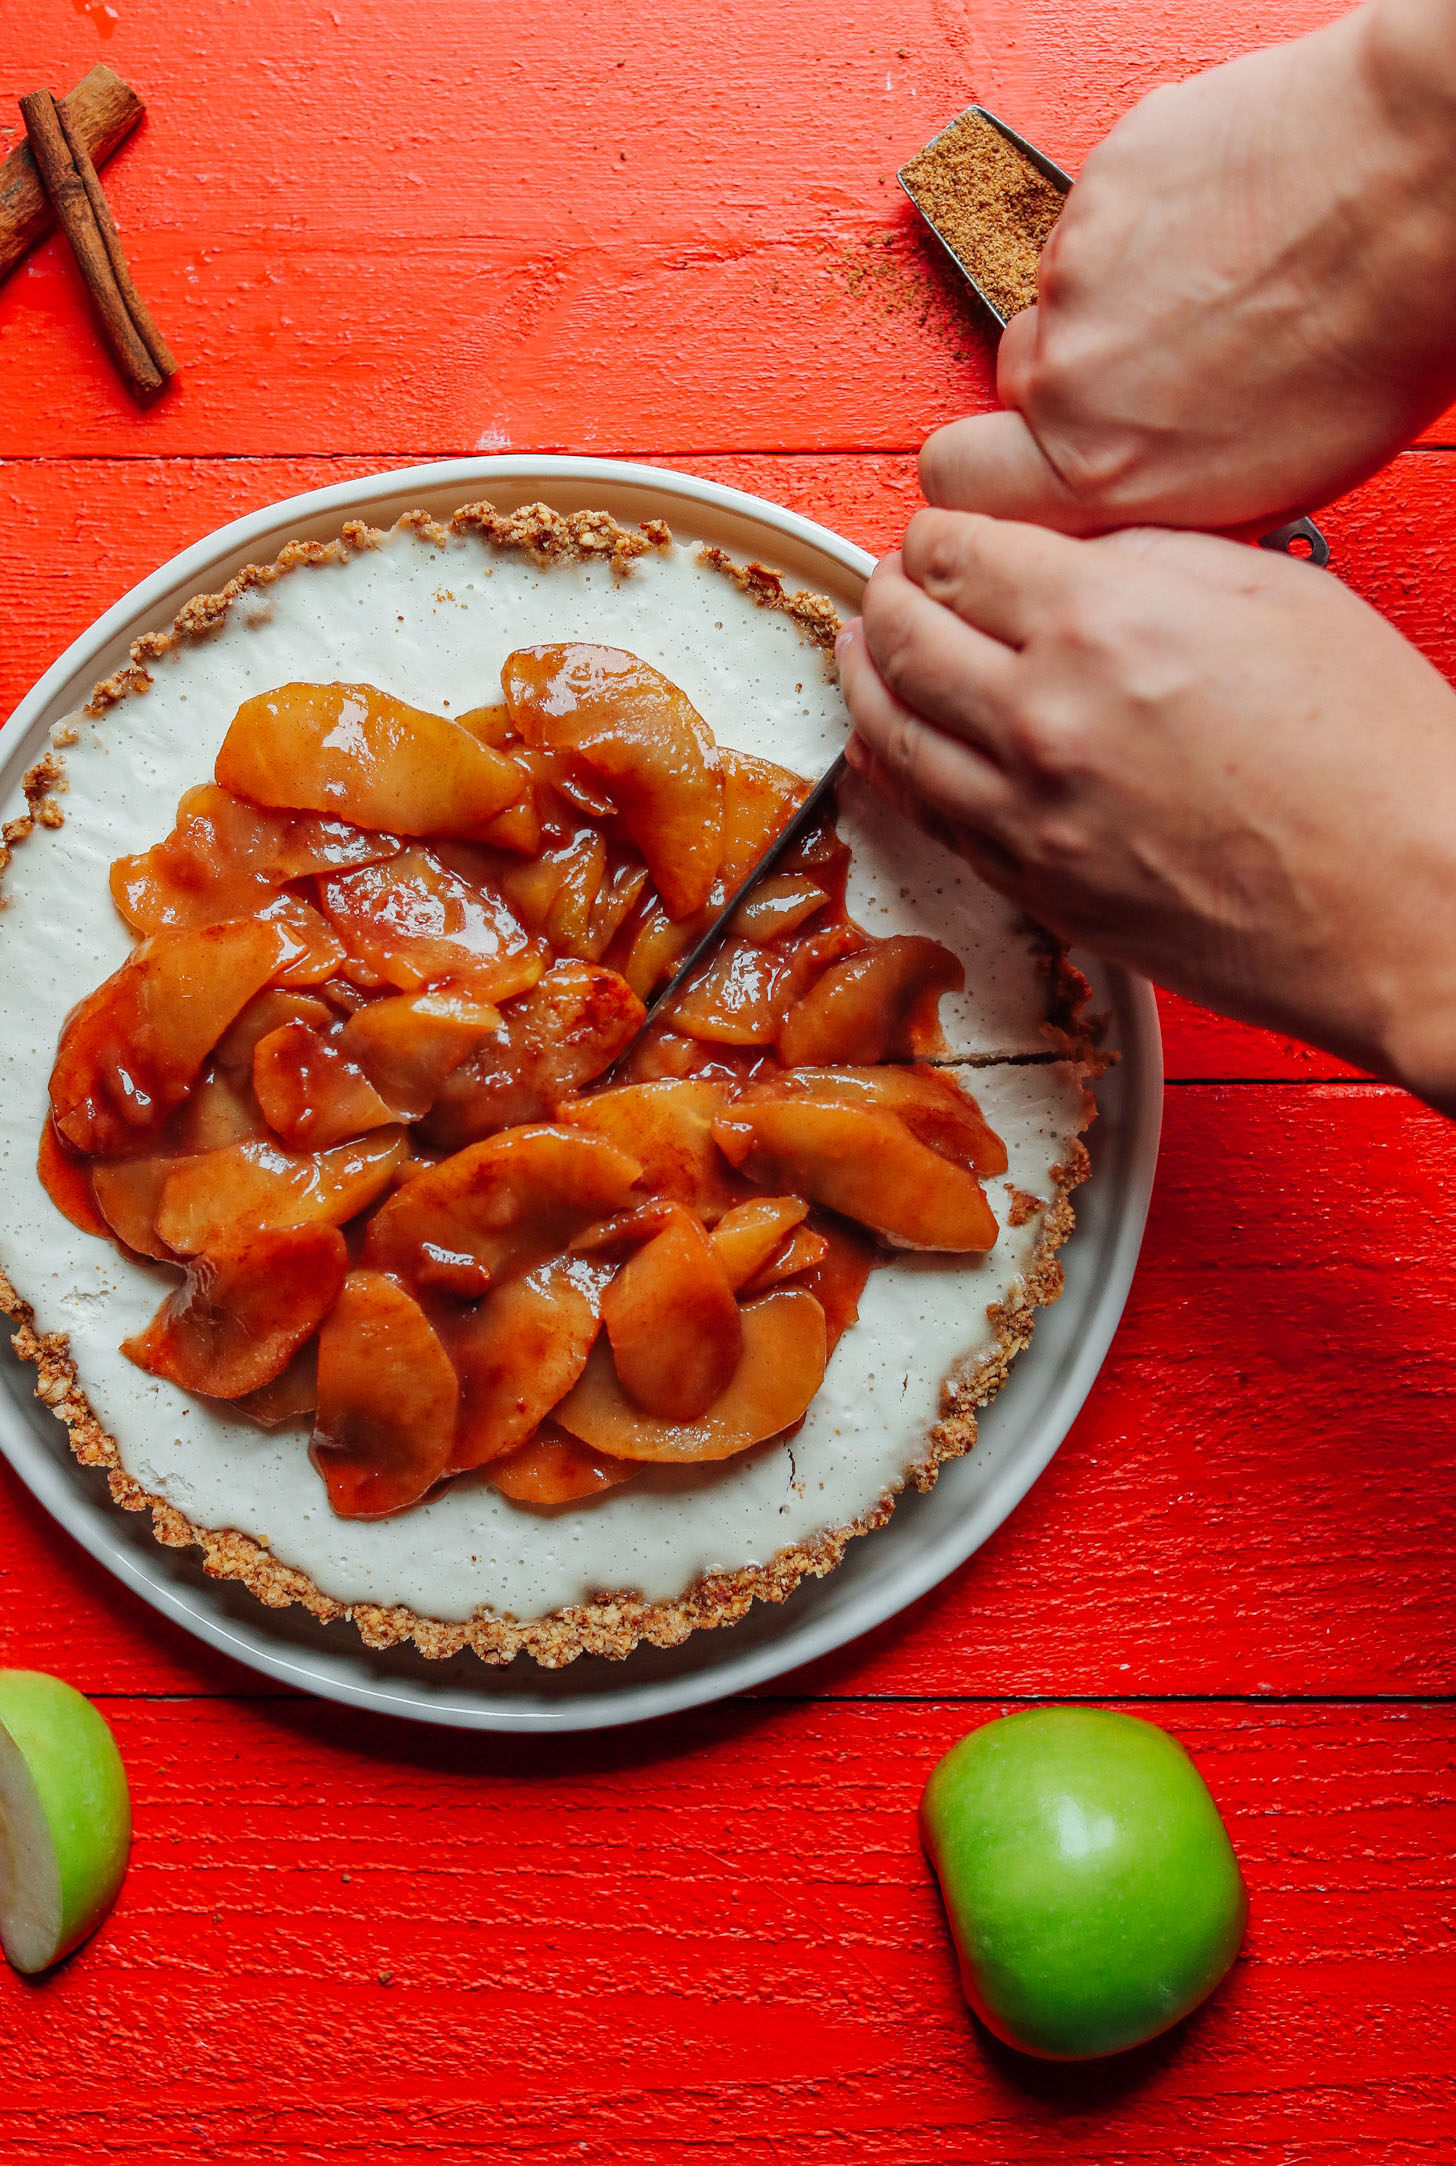 INCREDIBLE Caramel Apple Tart! 10 ingredients, naturally sweetened, SO delicious! #vegan #apple #tart #plantbased #thanksgiving #recipe #glutenfree #minimalistbaker